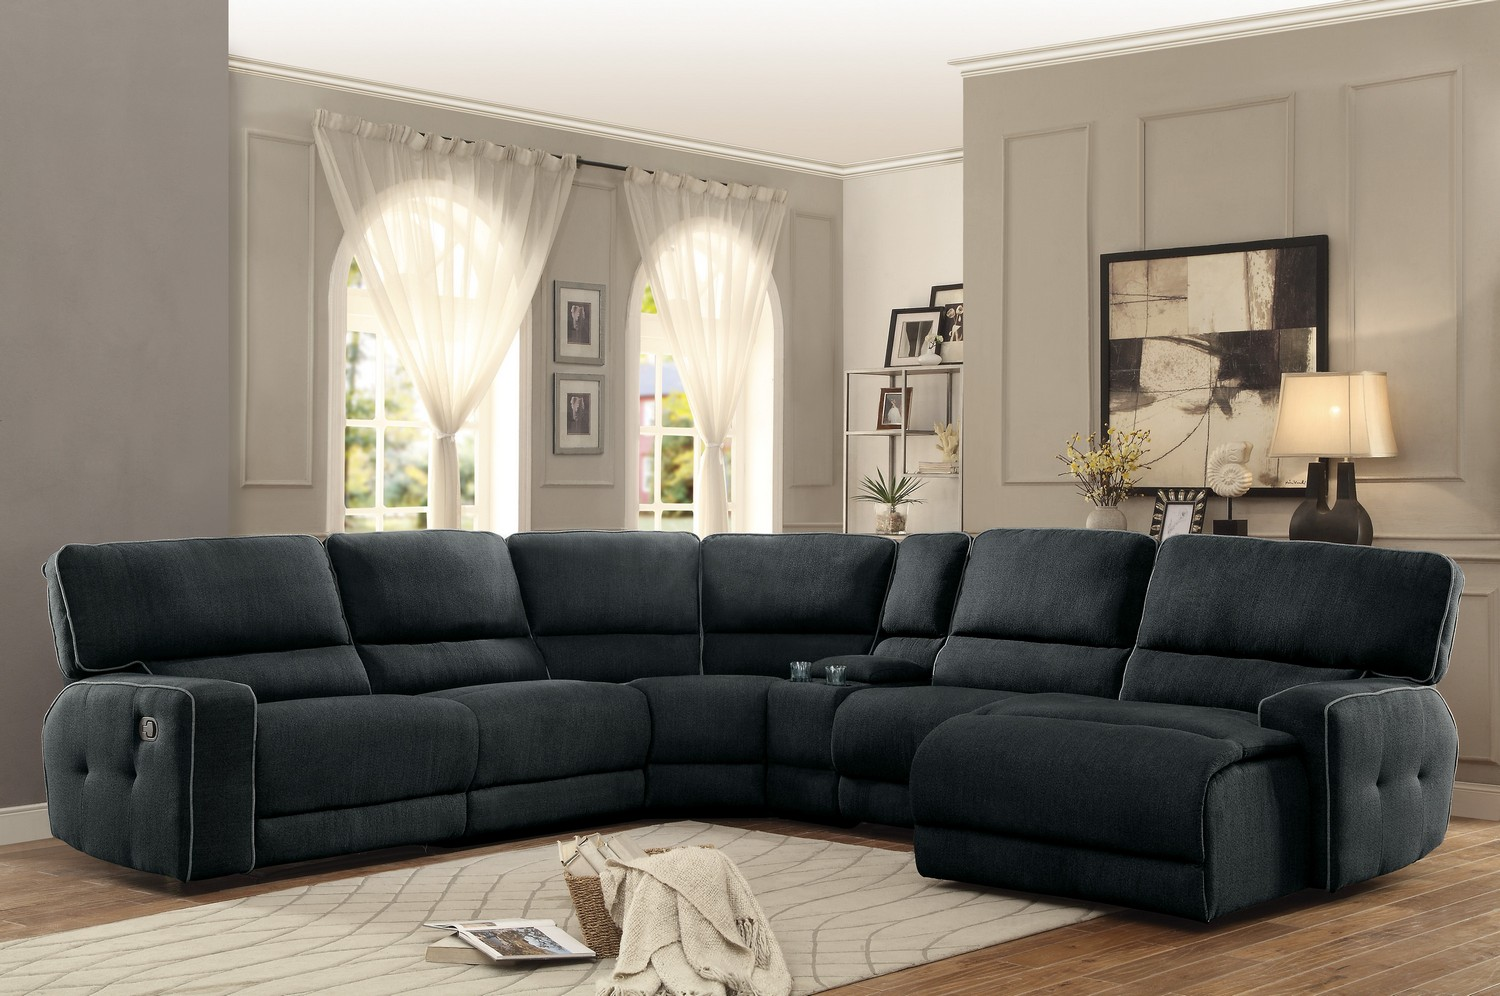 dark gray sectional sofa with collection also fabulous charcoal chaise lounge images design venetian homelegance keamey reclining sectional sofa set a 12312